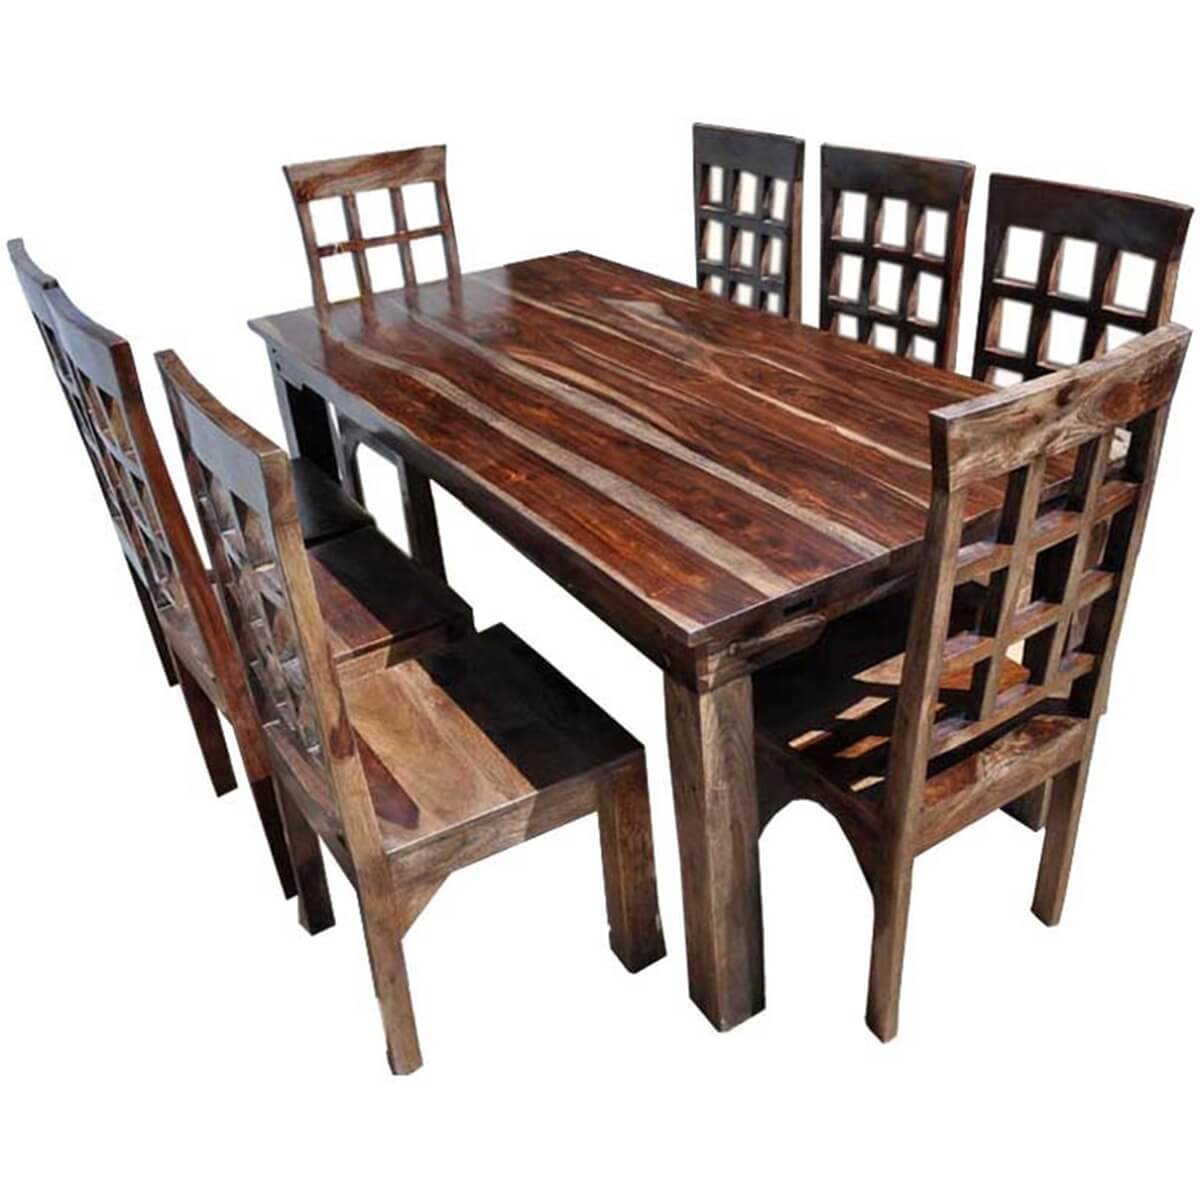 Portland rustic furniture dining room table chair set w for Dining room chair set